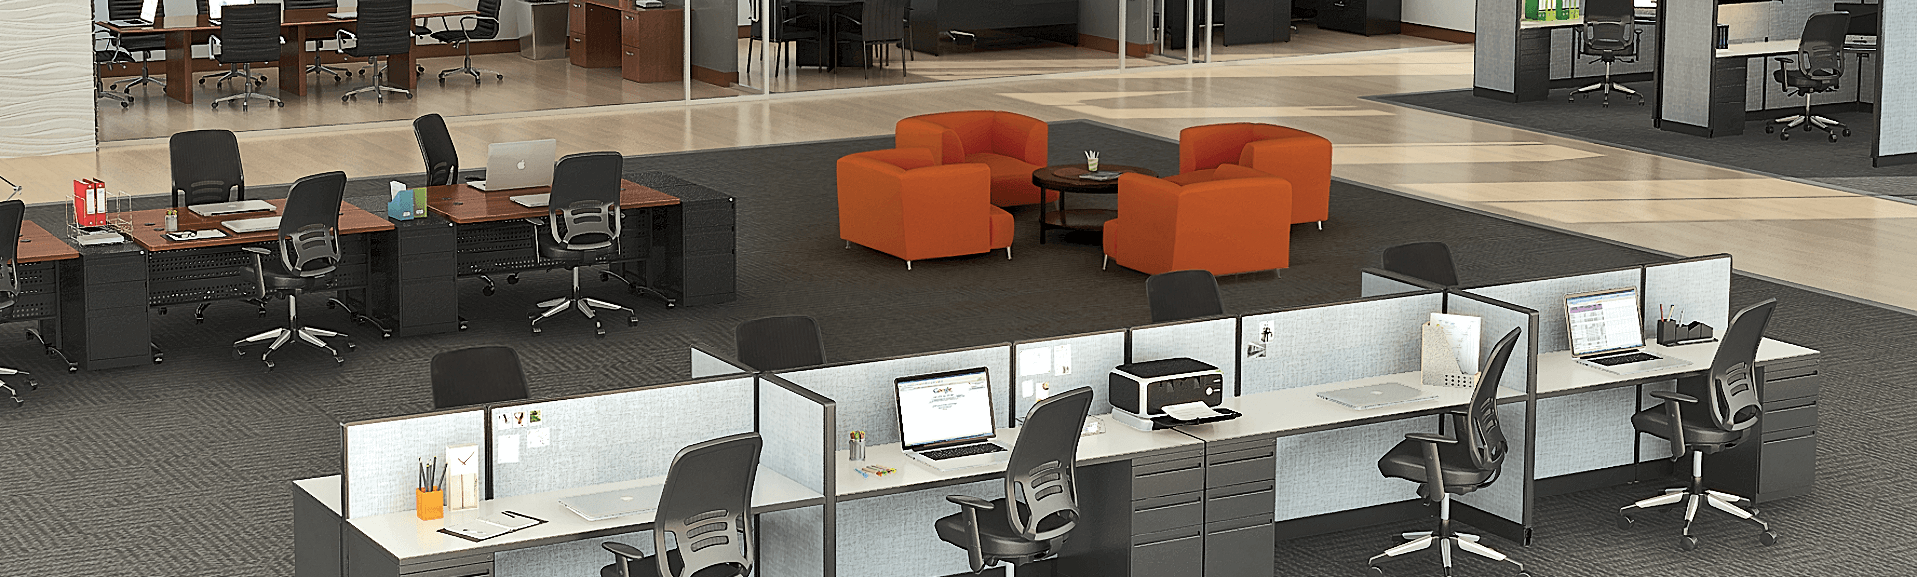 Office Furniture: Office Staging – Commercial Staging & Rental